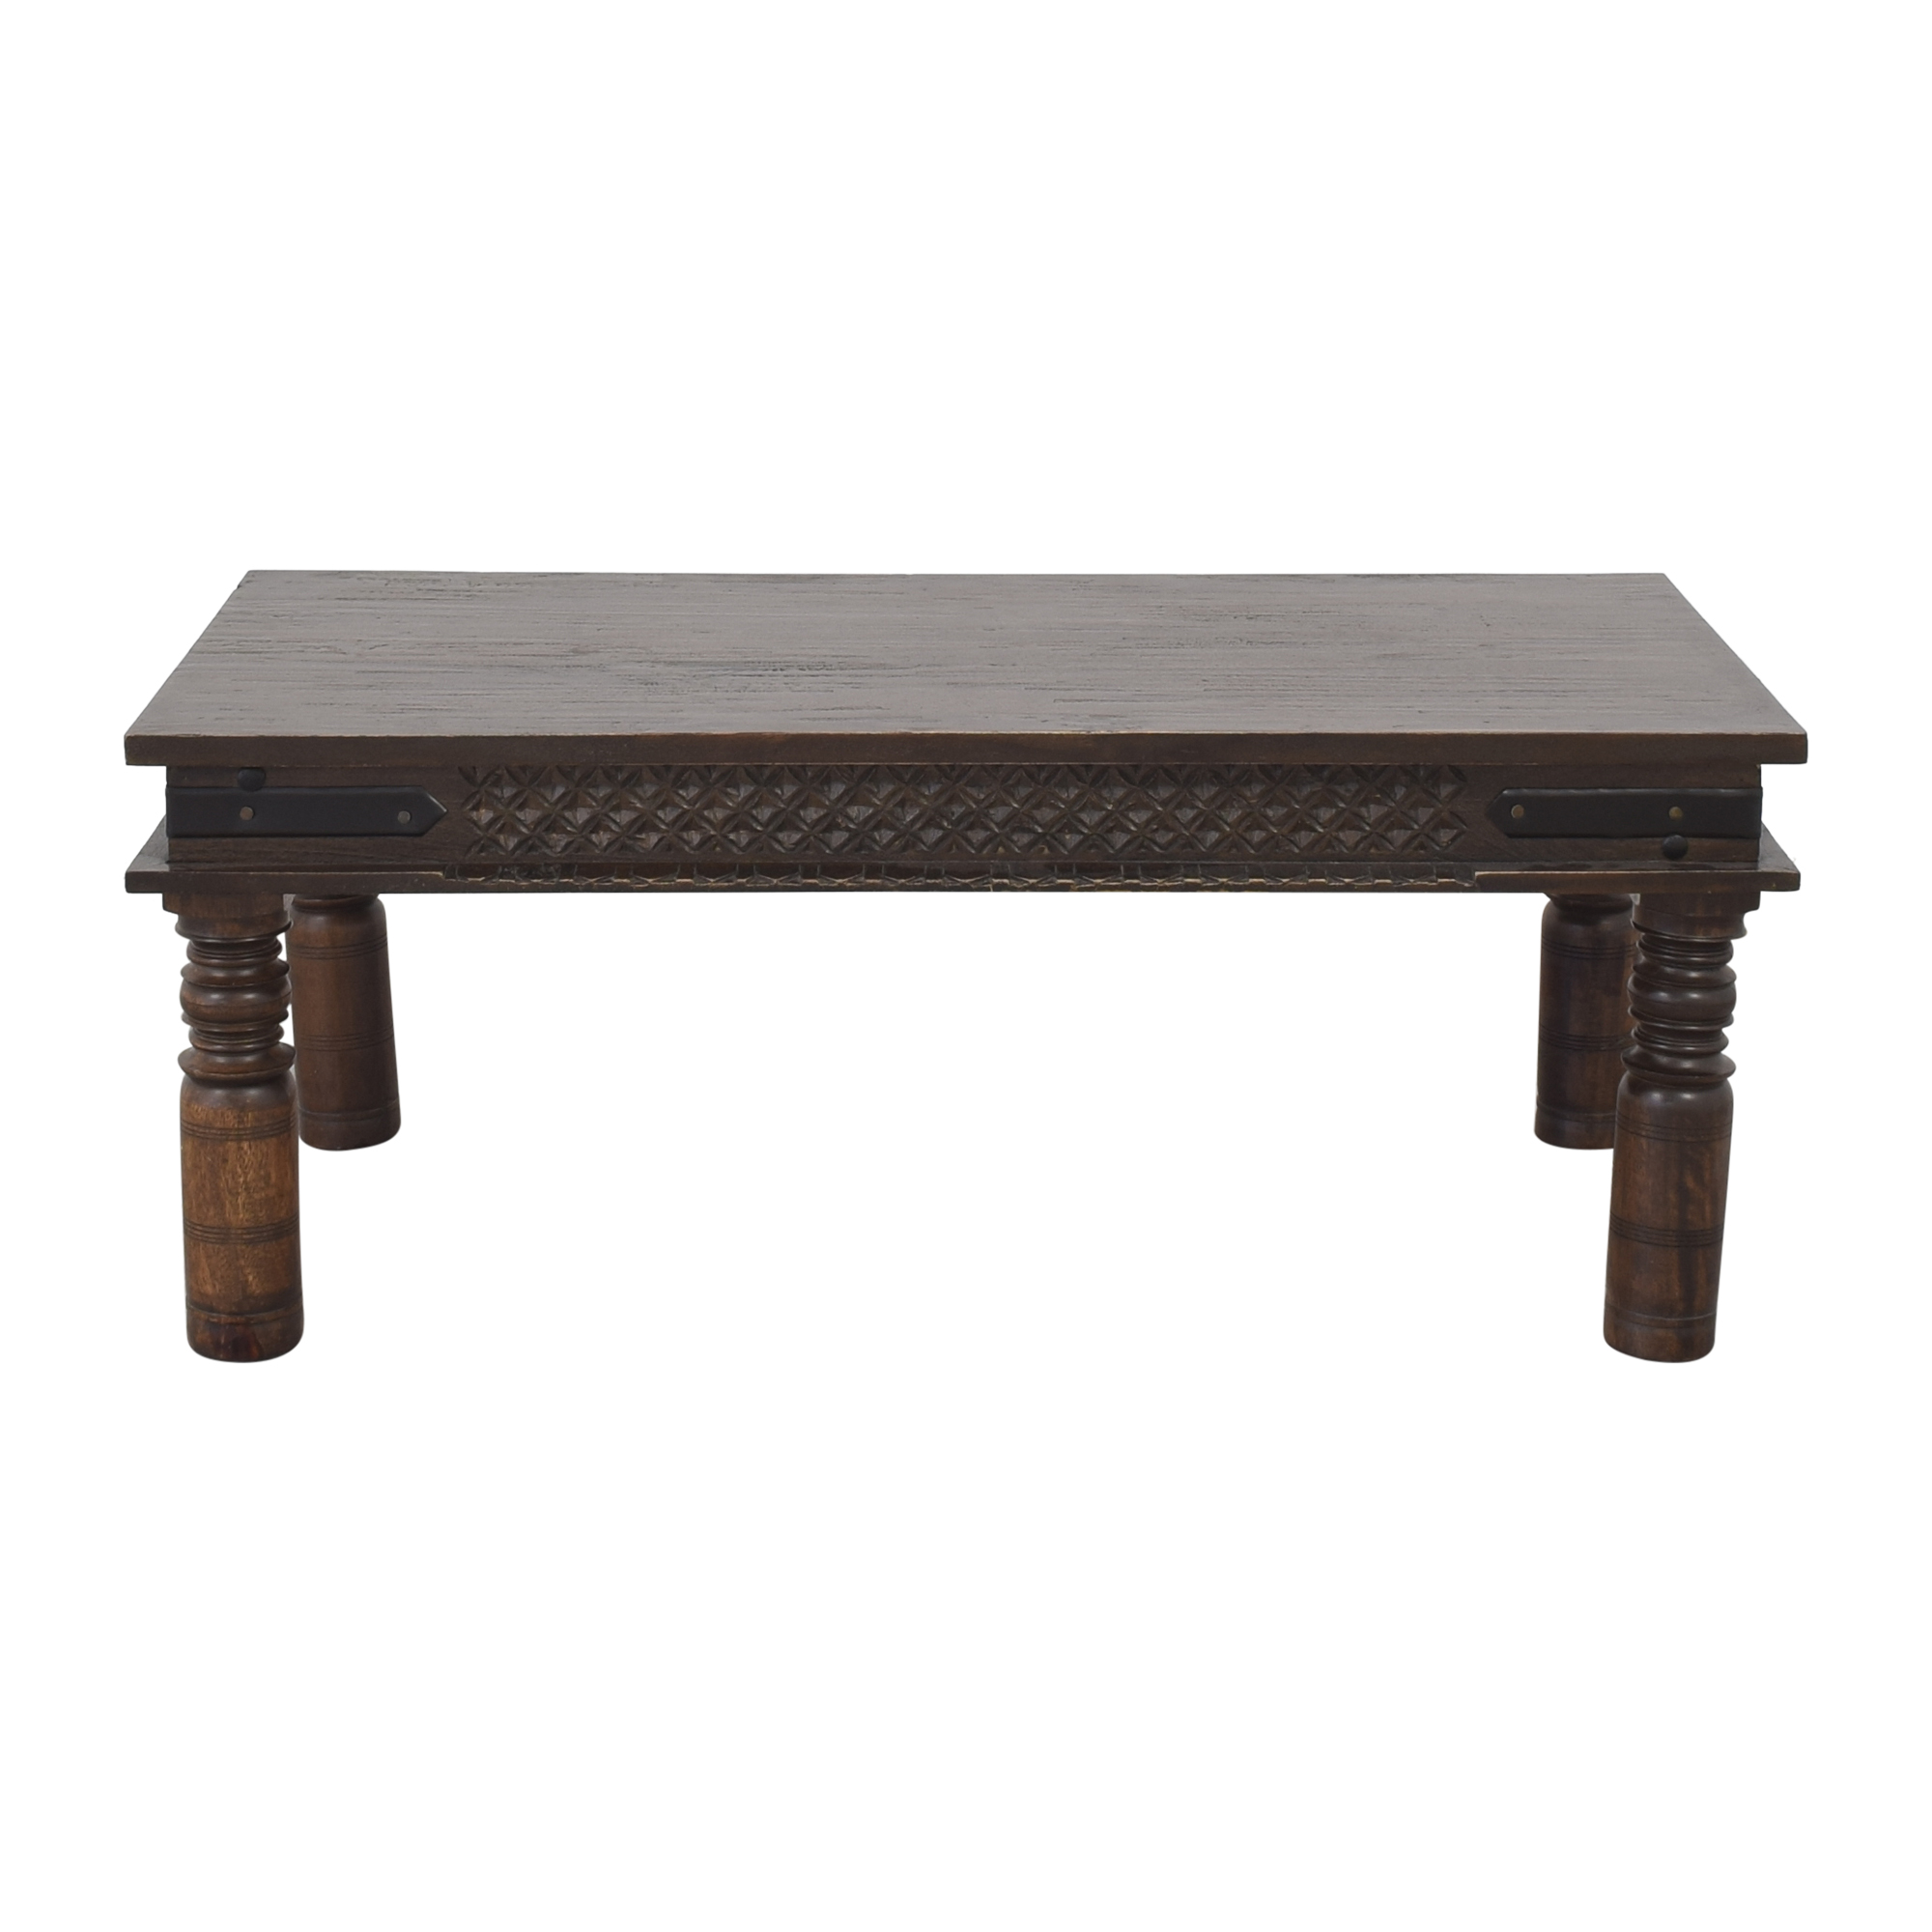 Pottery Barn Pottery Barn Turned Leg Coffee Table